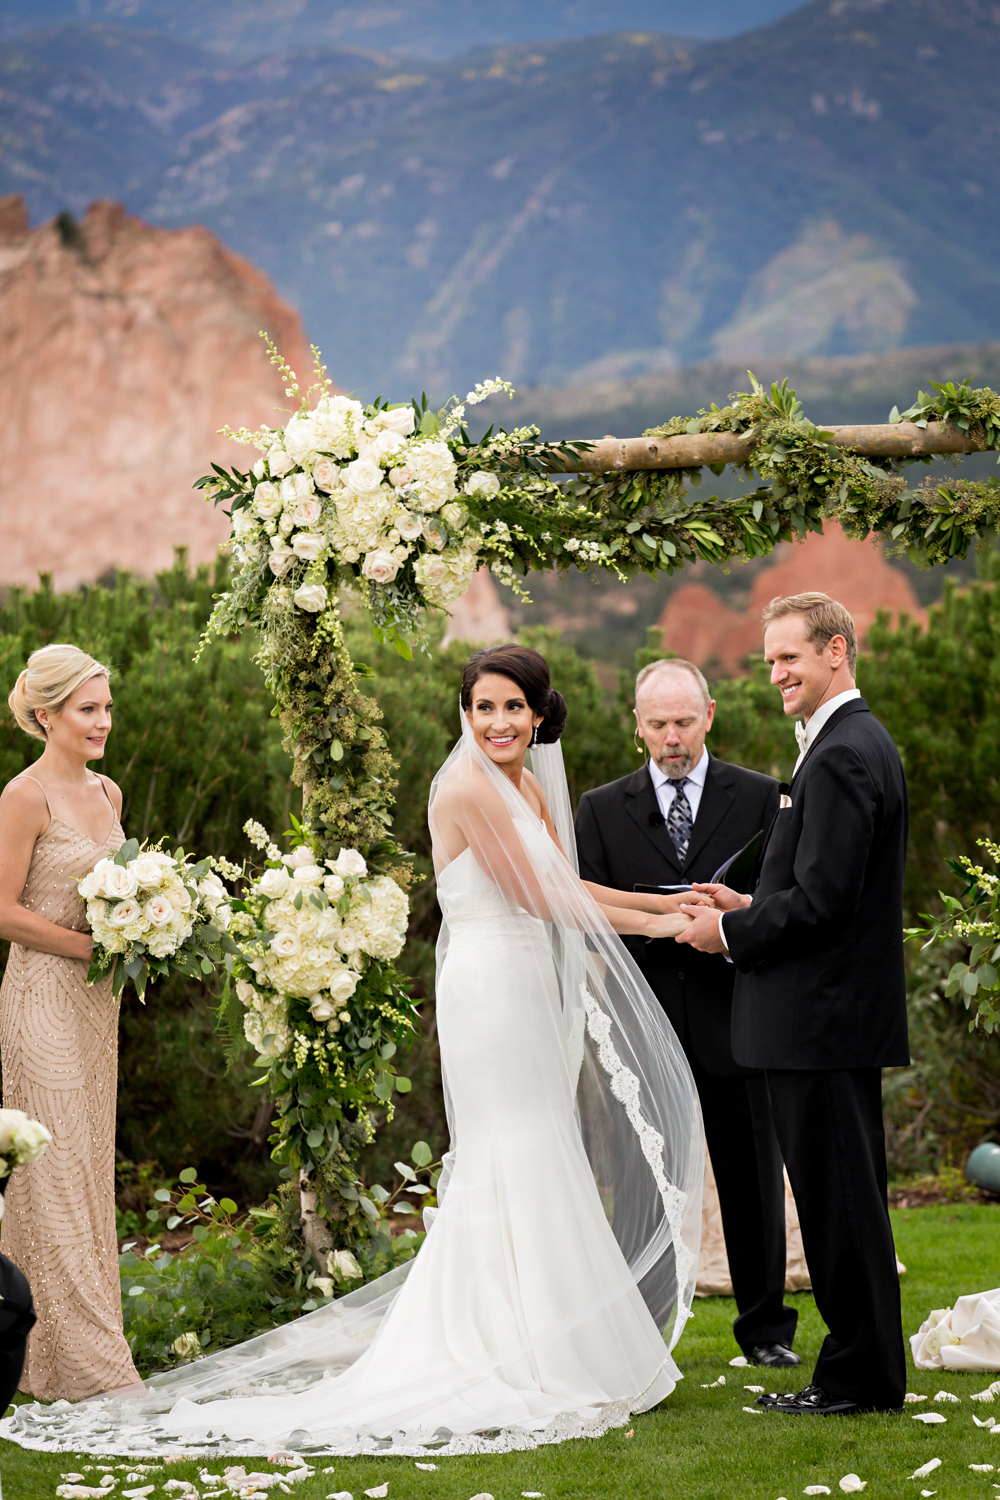 PaigeEden_Weddings_Broadmoor_041.jpg